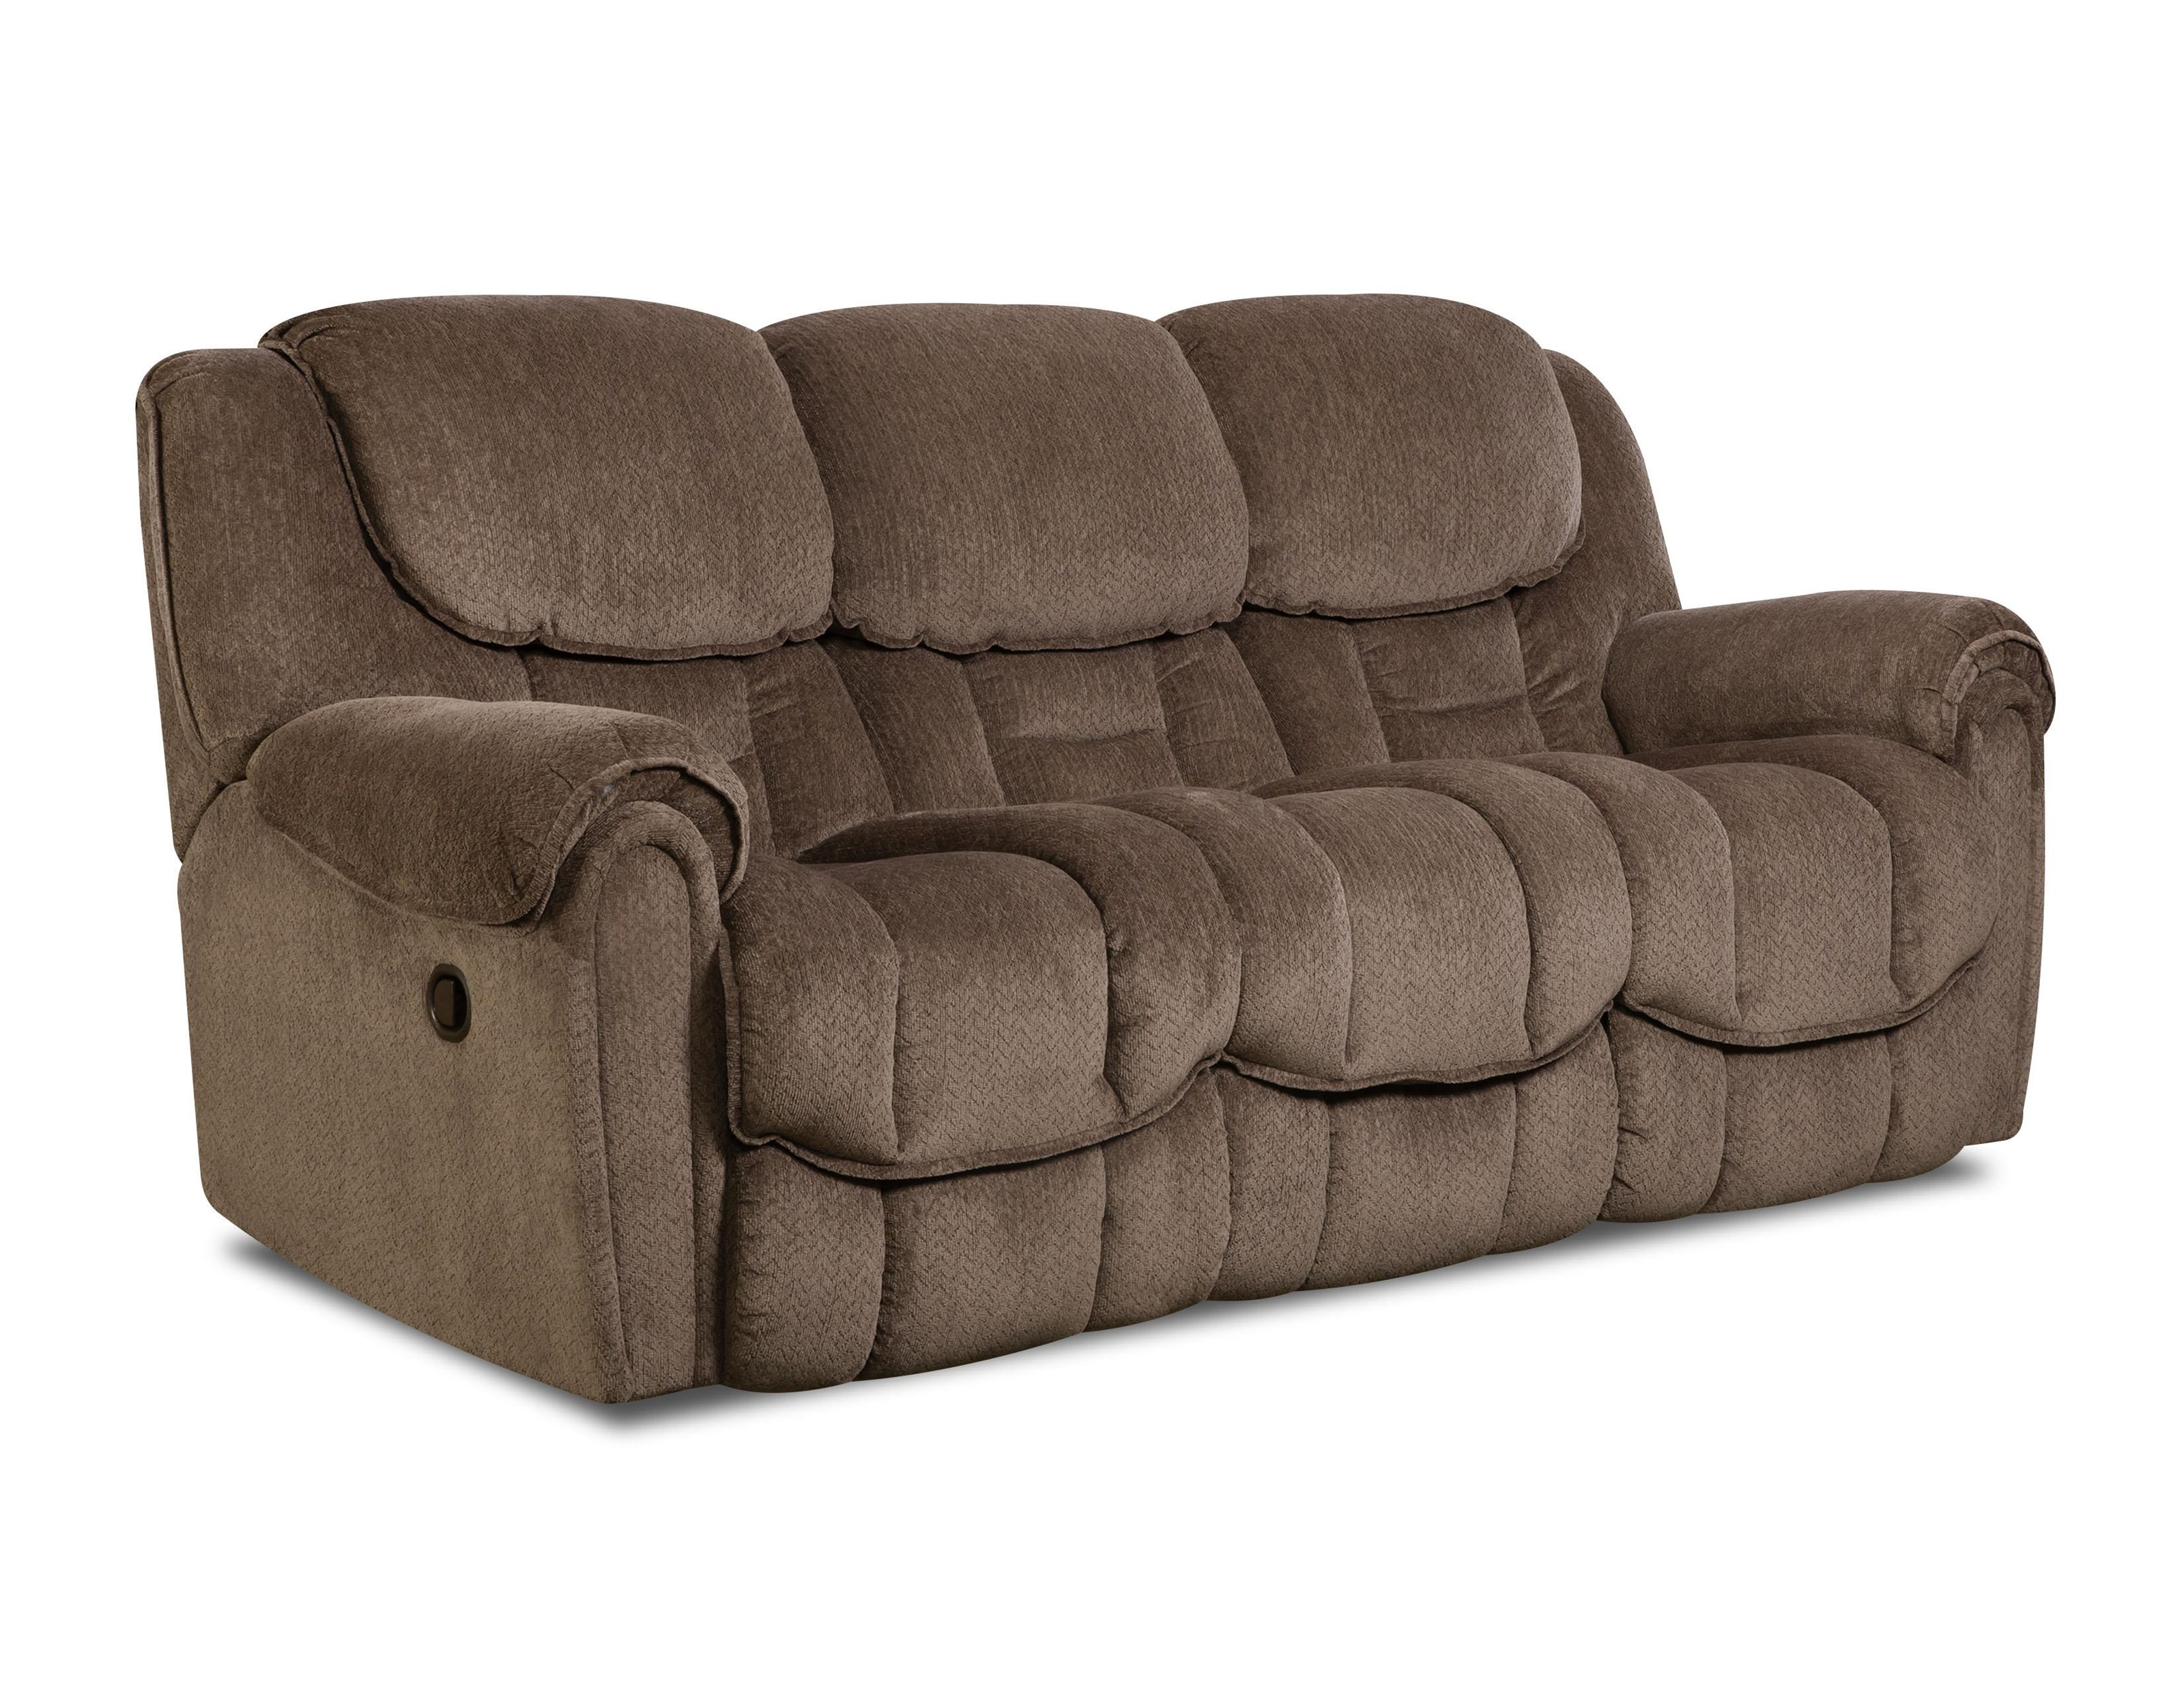 HomeStretch 122 Casual Reclining Sofa - Item Number: 122-30-17